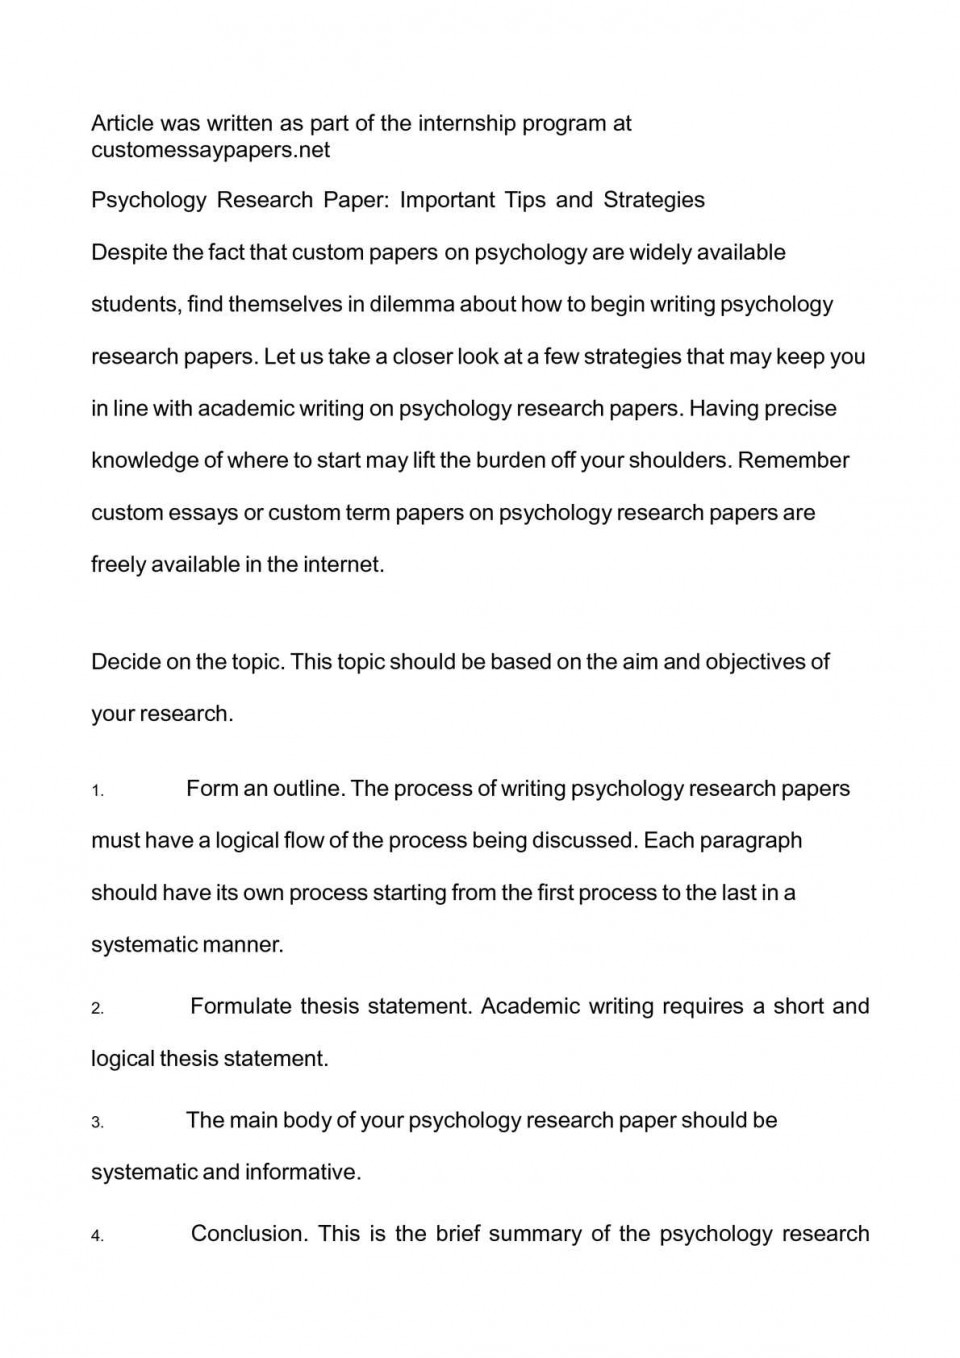 019 Psychology Research Paper Topics Striking On Dreams Depression For High School Students 960